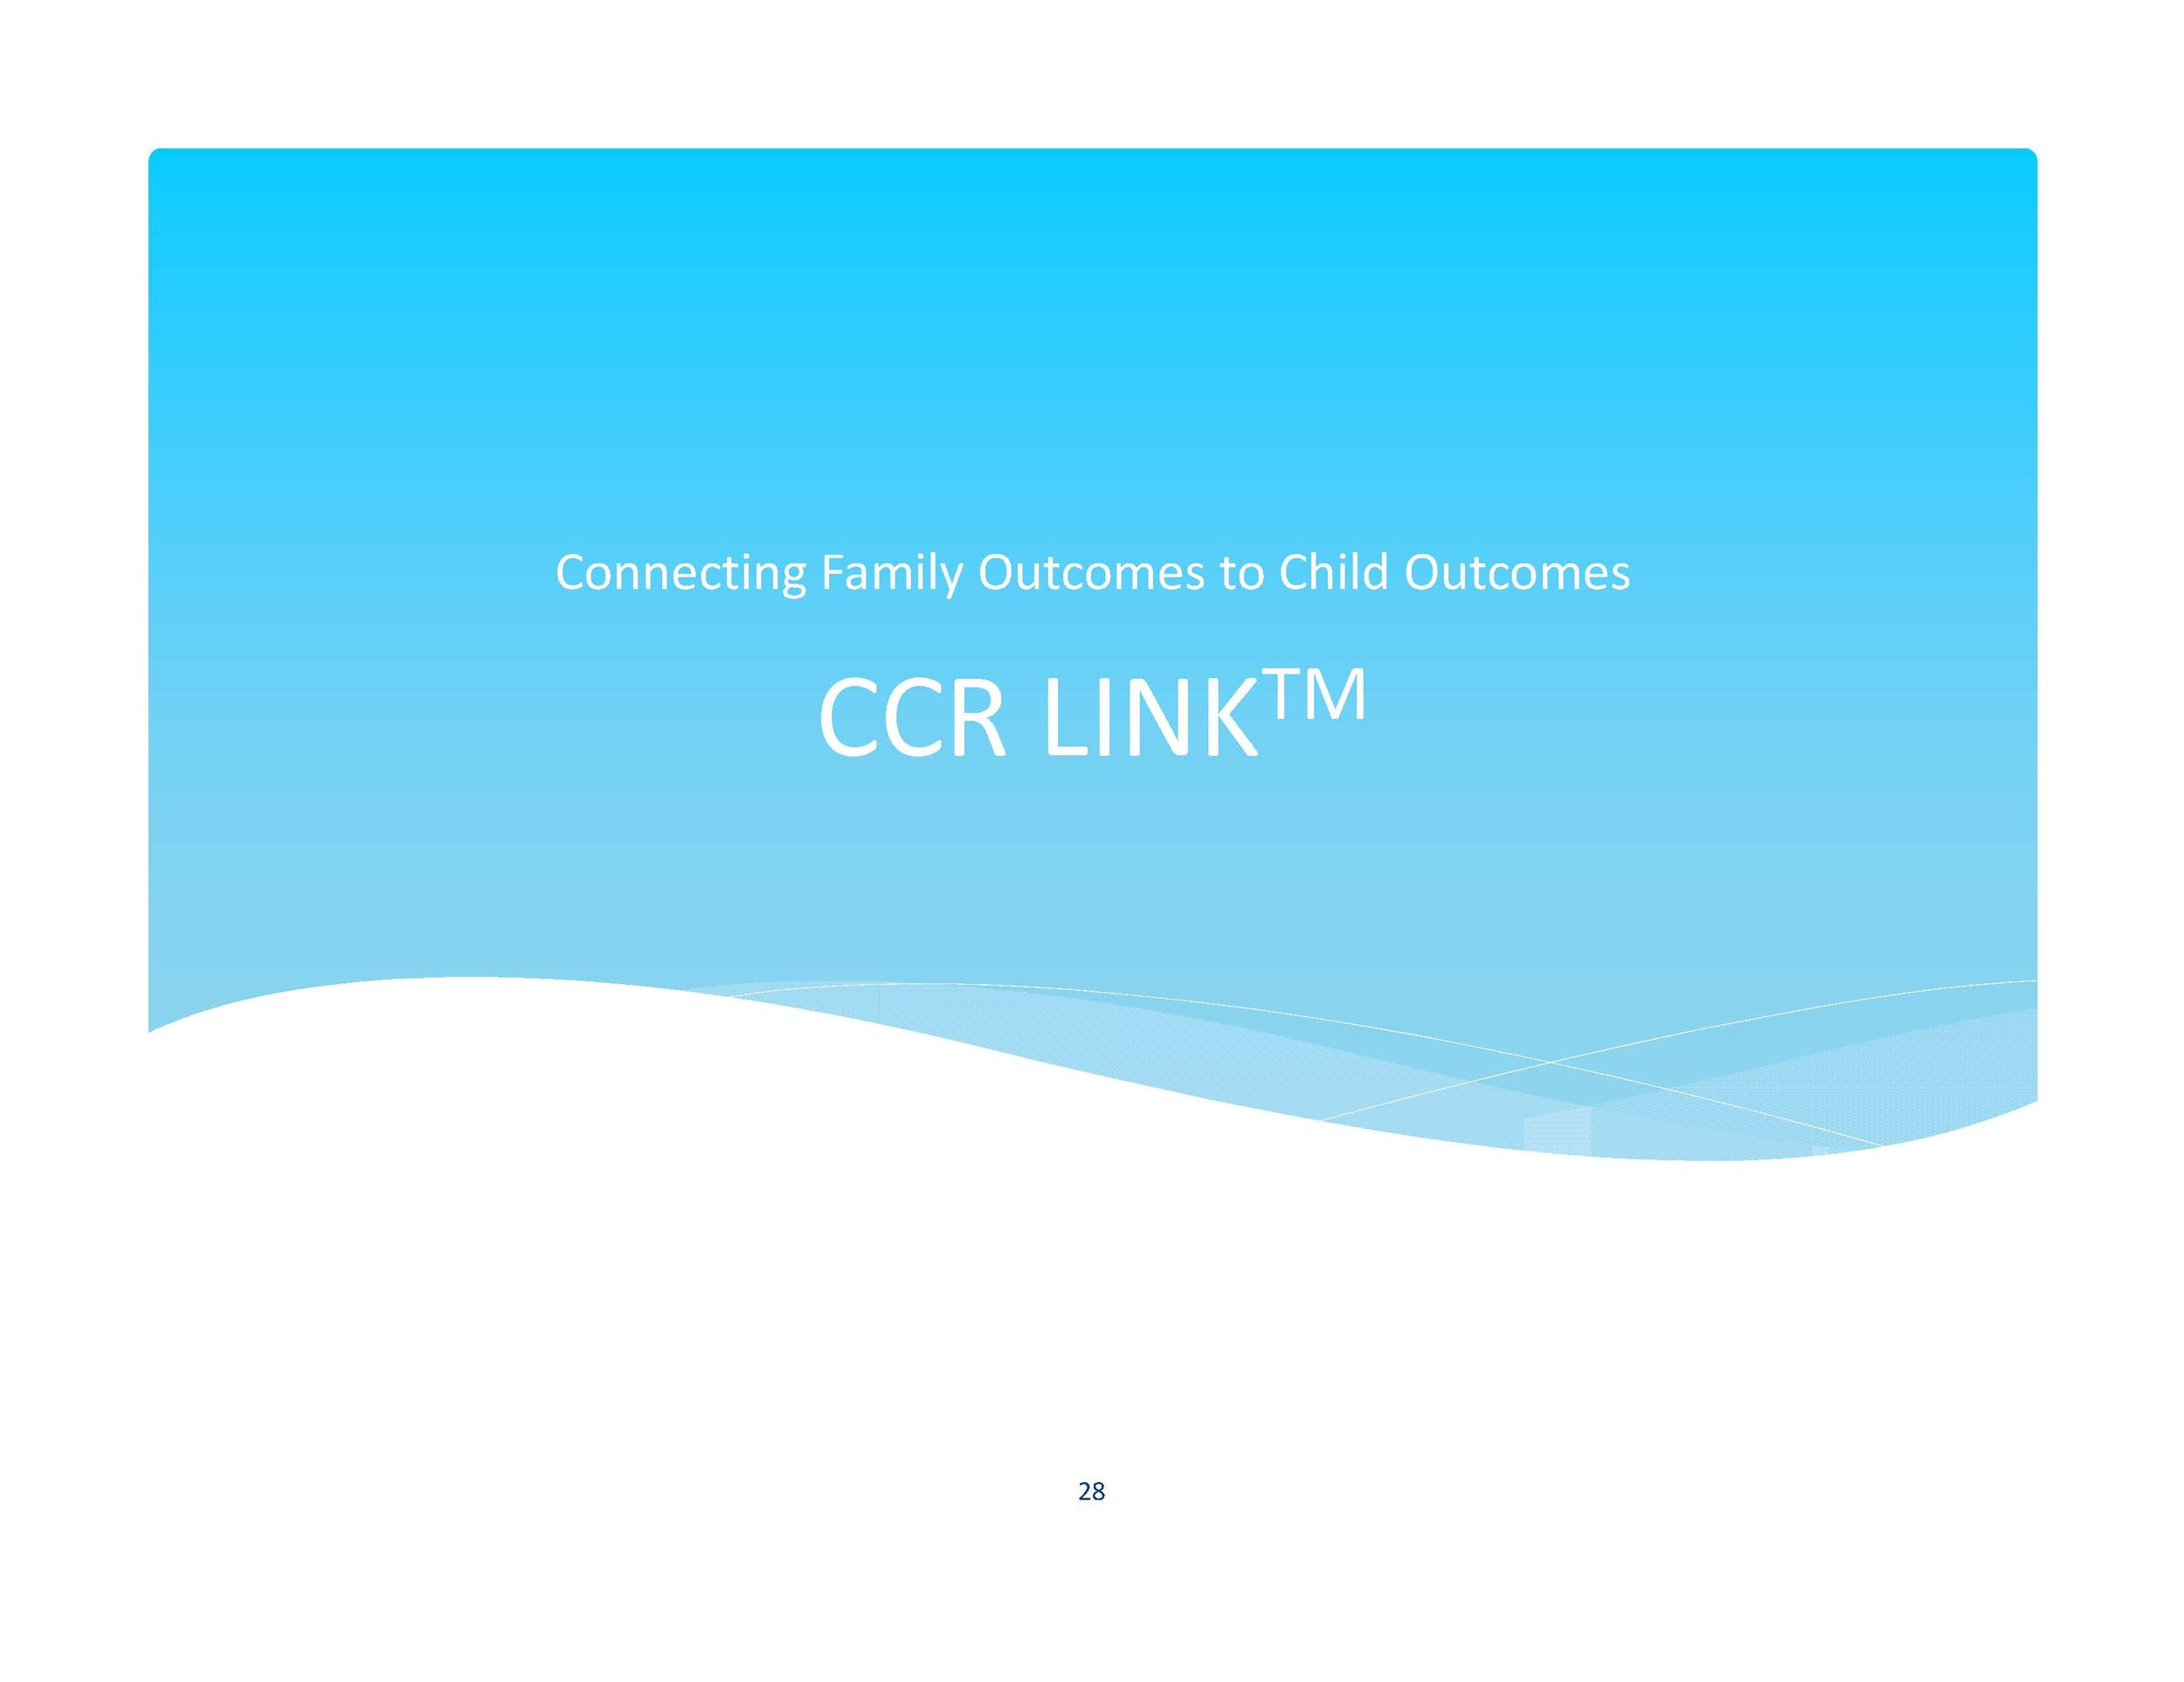 CCR Introduction 2017-2018 v2_Page_28.jpg